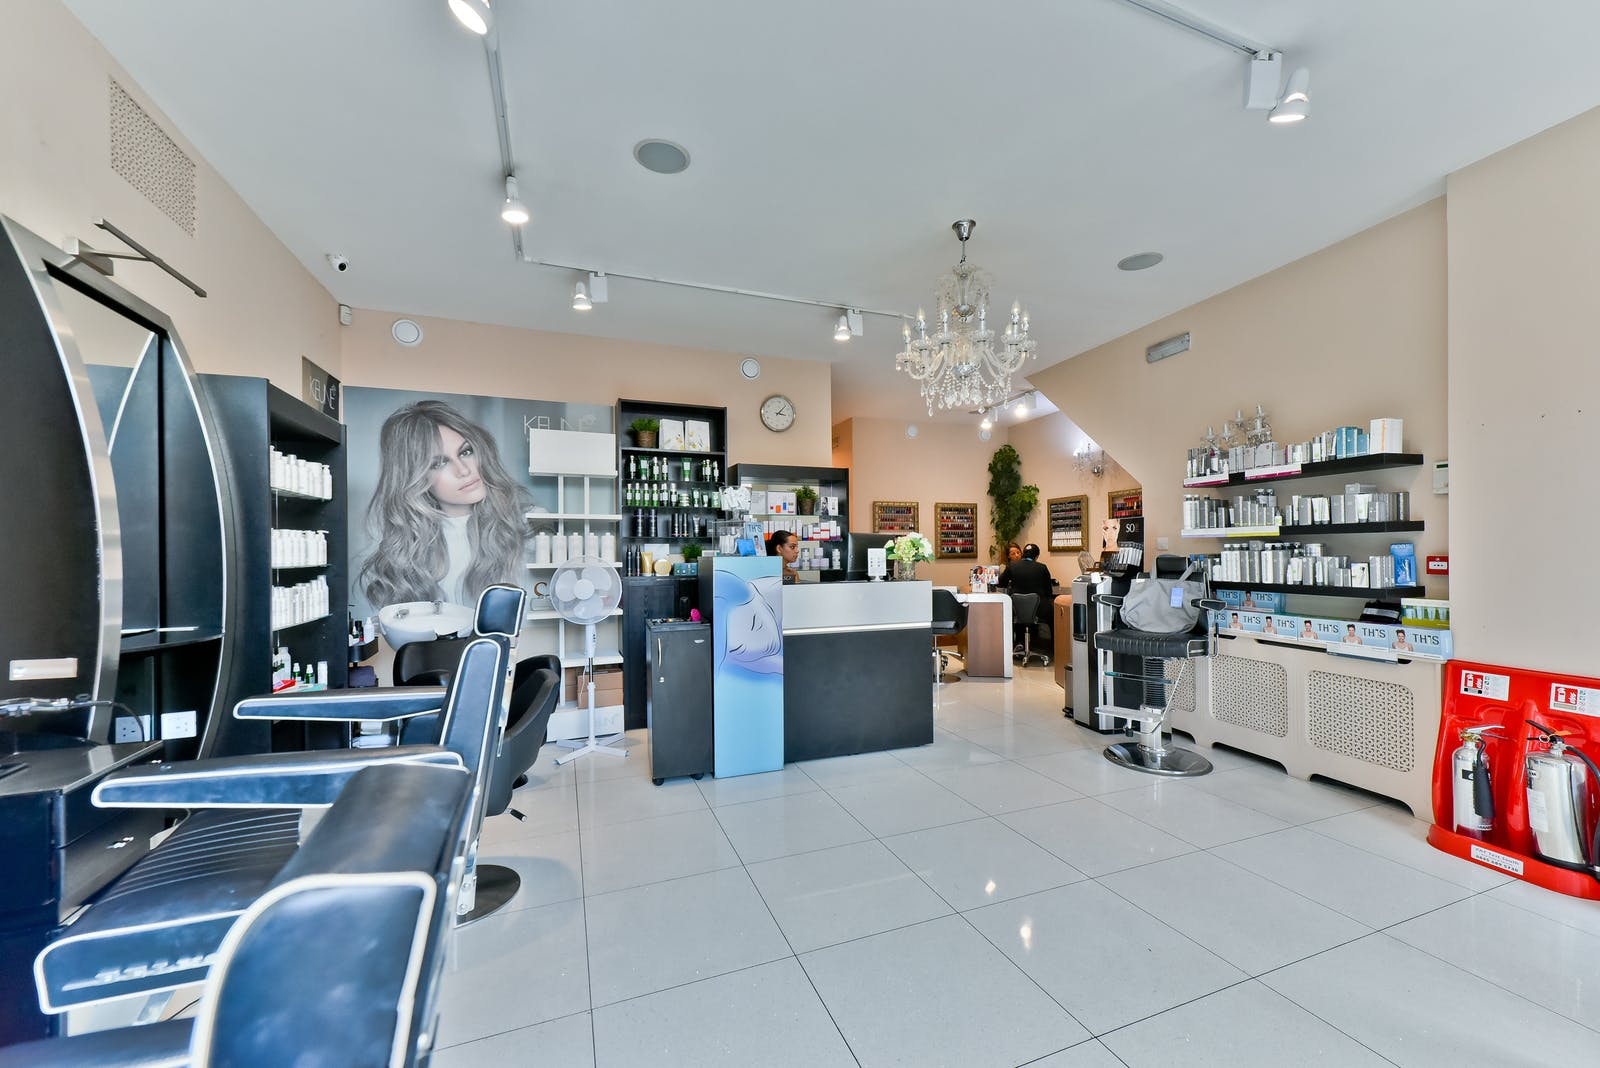 21 Clapham High Street, London, Mixed Use For Sale - 21 Clapham High Street, SW4 7TR picture No. 3